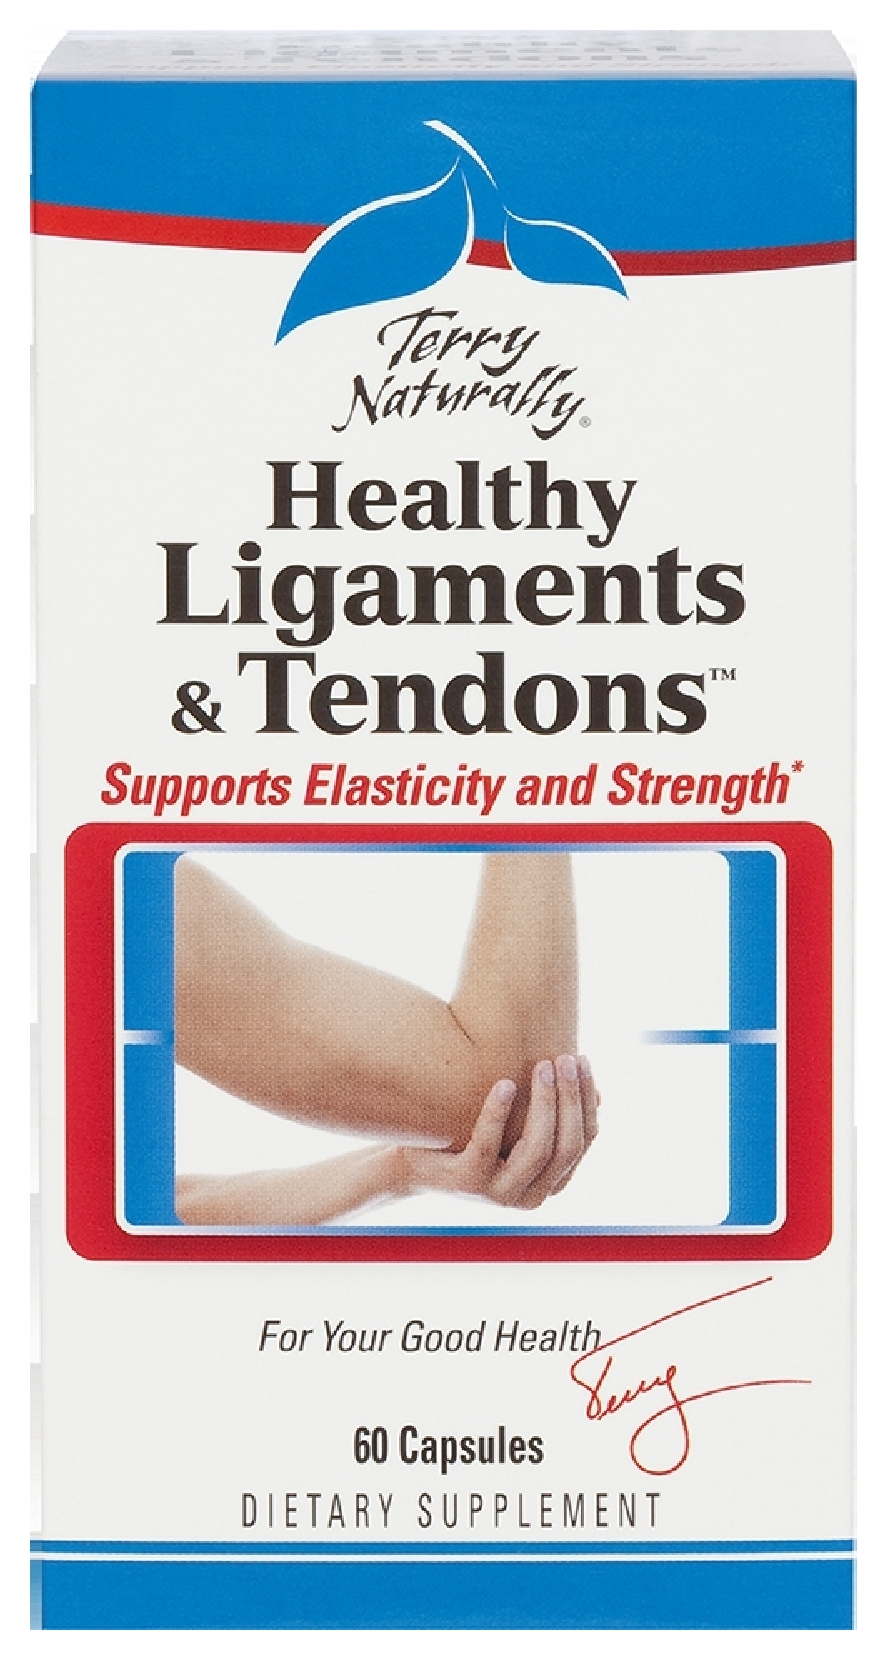 Terry Naturally Healthy Ligaments & Tendons 60 caps by EuroPharma